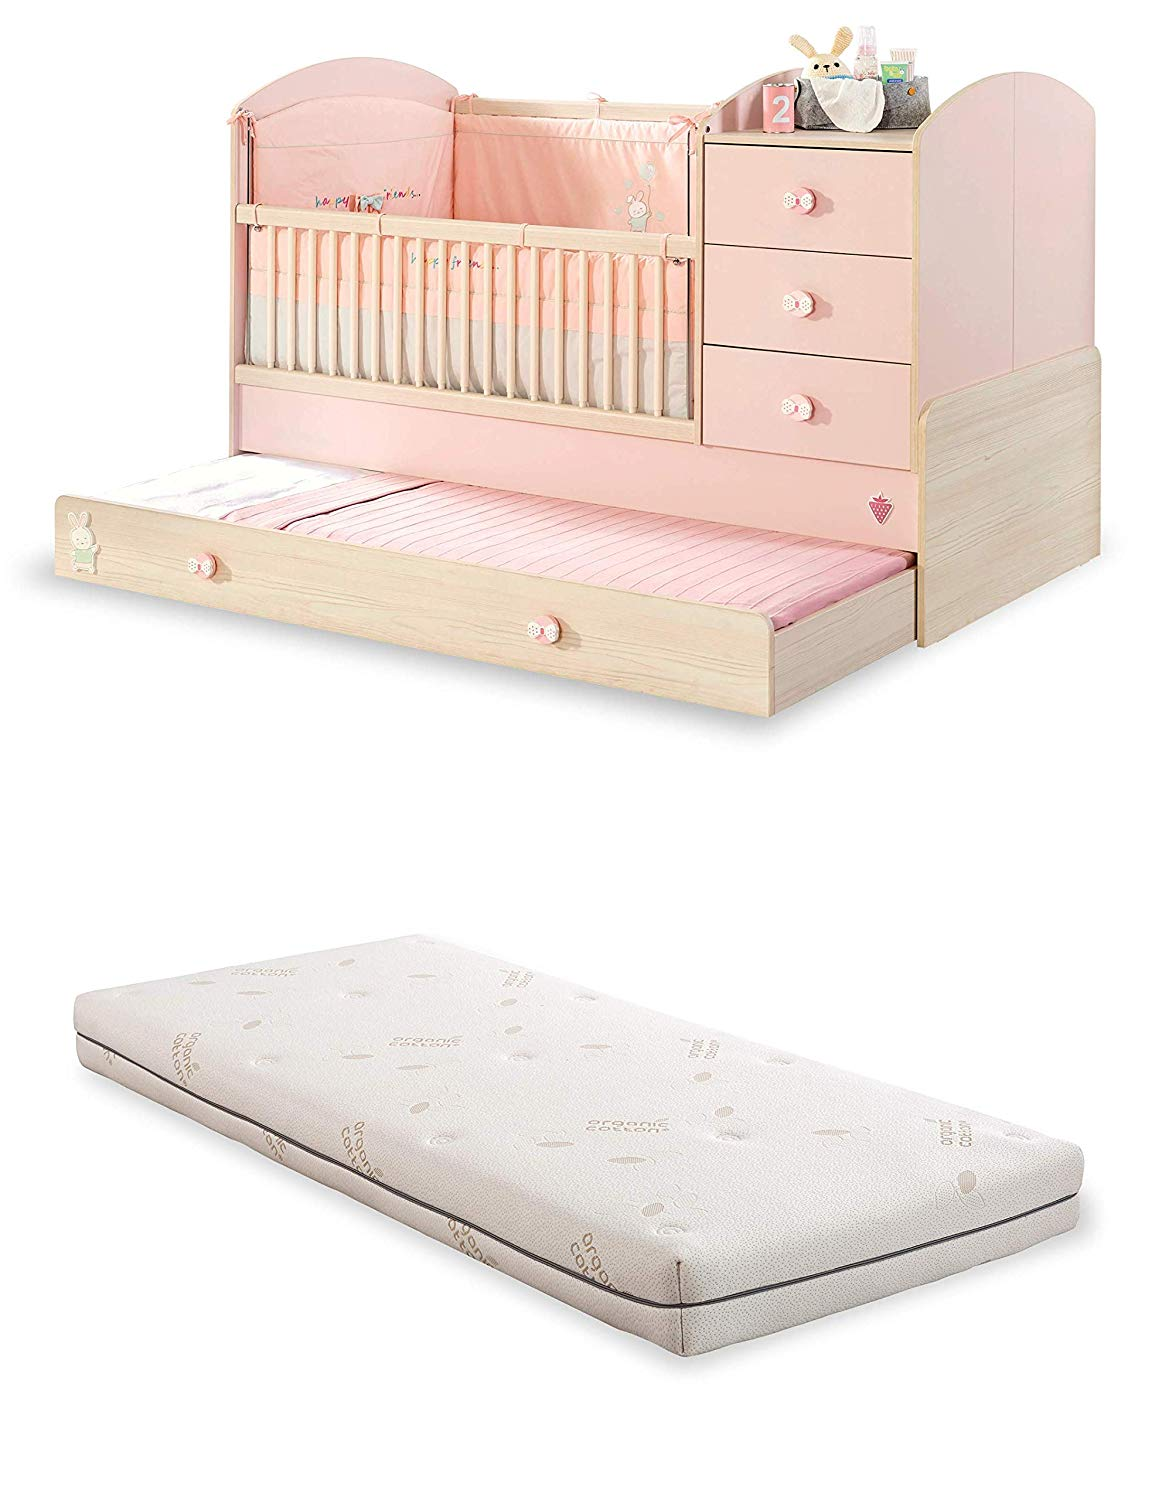 dafnedesign - baby bed for baby or girl's bedroom - a baby bed